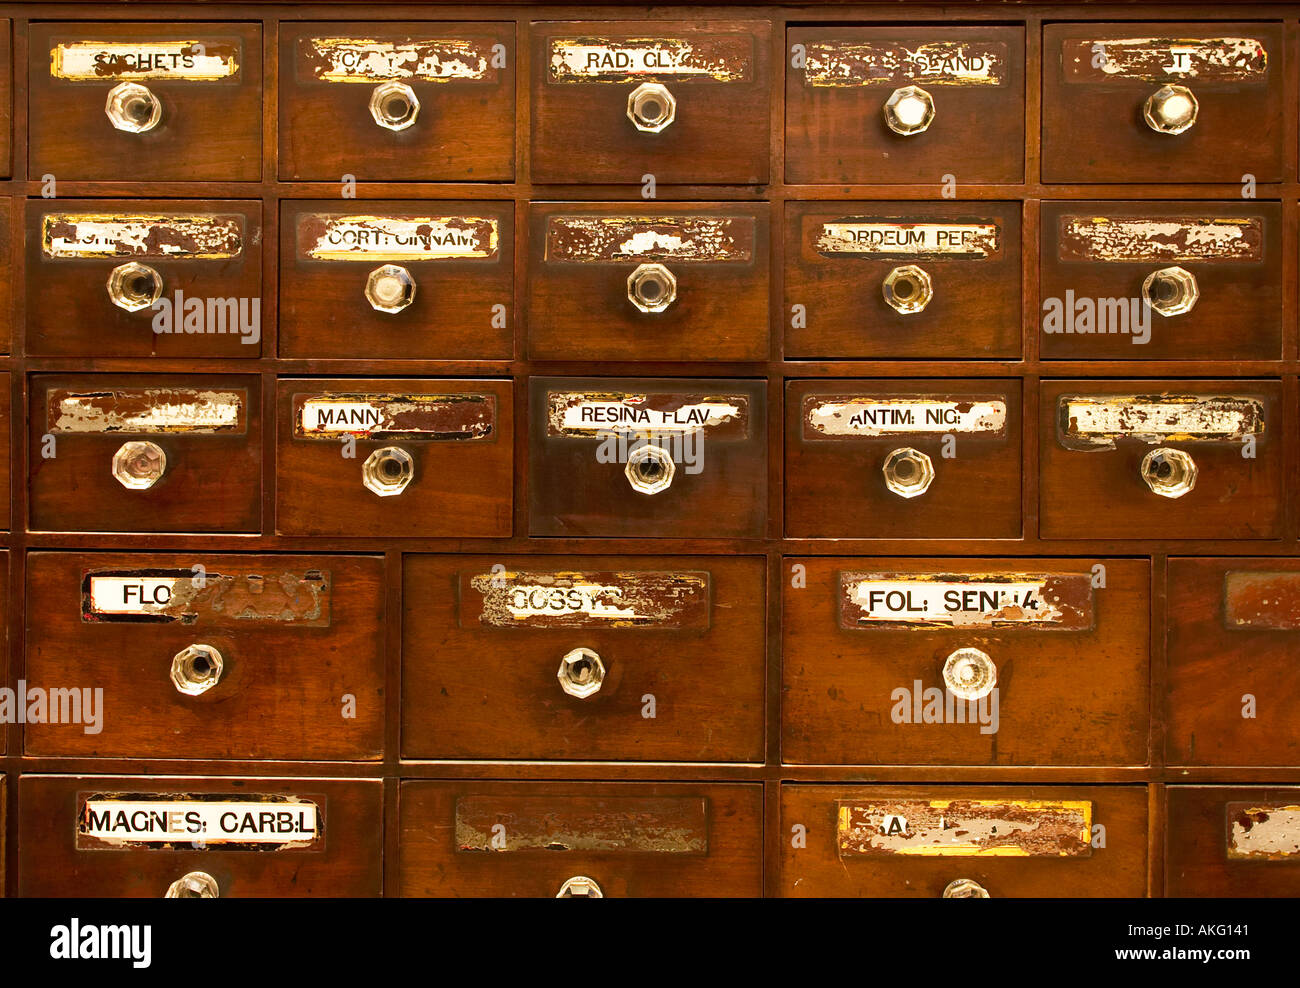 Antique apothecary drawers UK - Stock Image - Antique Old Apothecary Cabinet Stock Photos & Antique Old